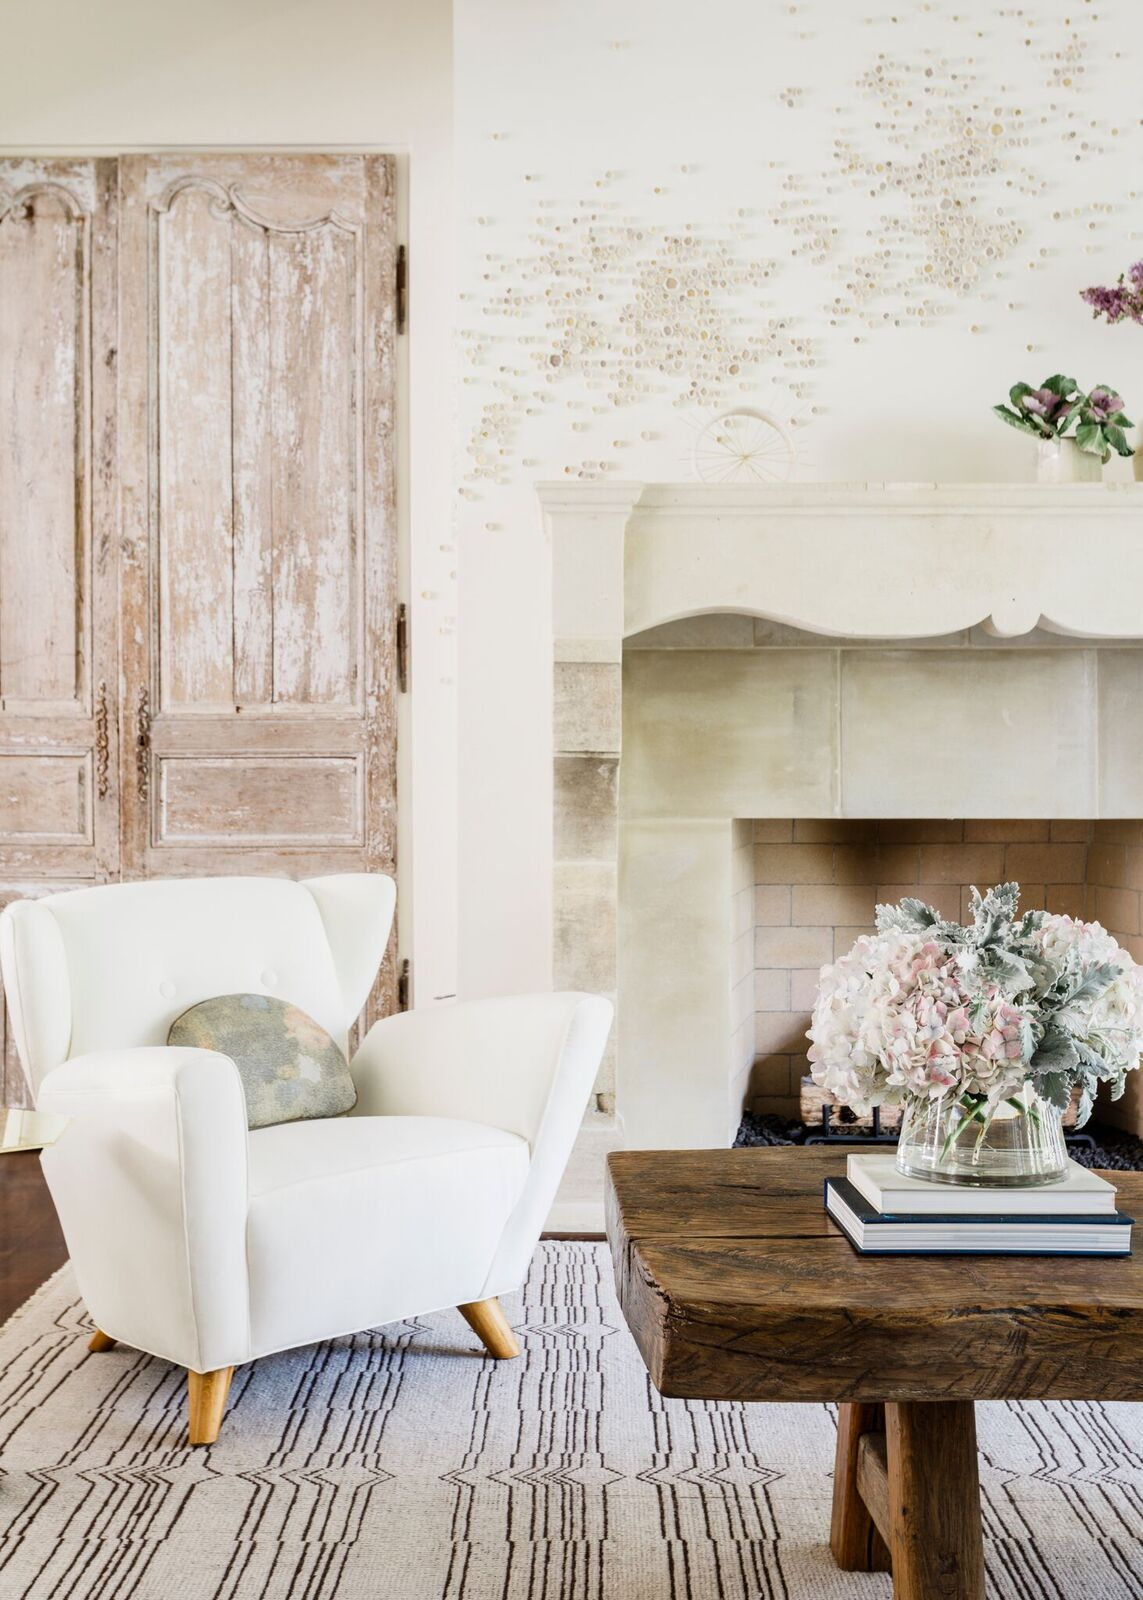 Romantic timeless interior design inspiration in this collection of elegant and sophisticated spaces. Come tour the work of Margaret Naeve, KAA, Cari Giannoulias, Ike Kligerman Barkley, and Jeffrey Dungan on Hello Lovely! #interiordesign #romanticdecor #elegantdecor #timelessdesign